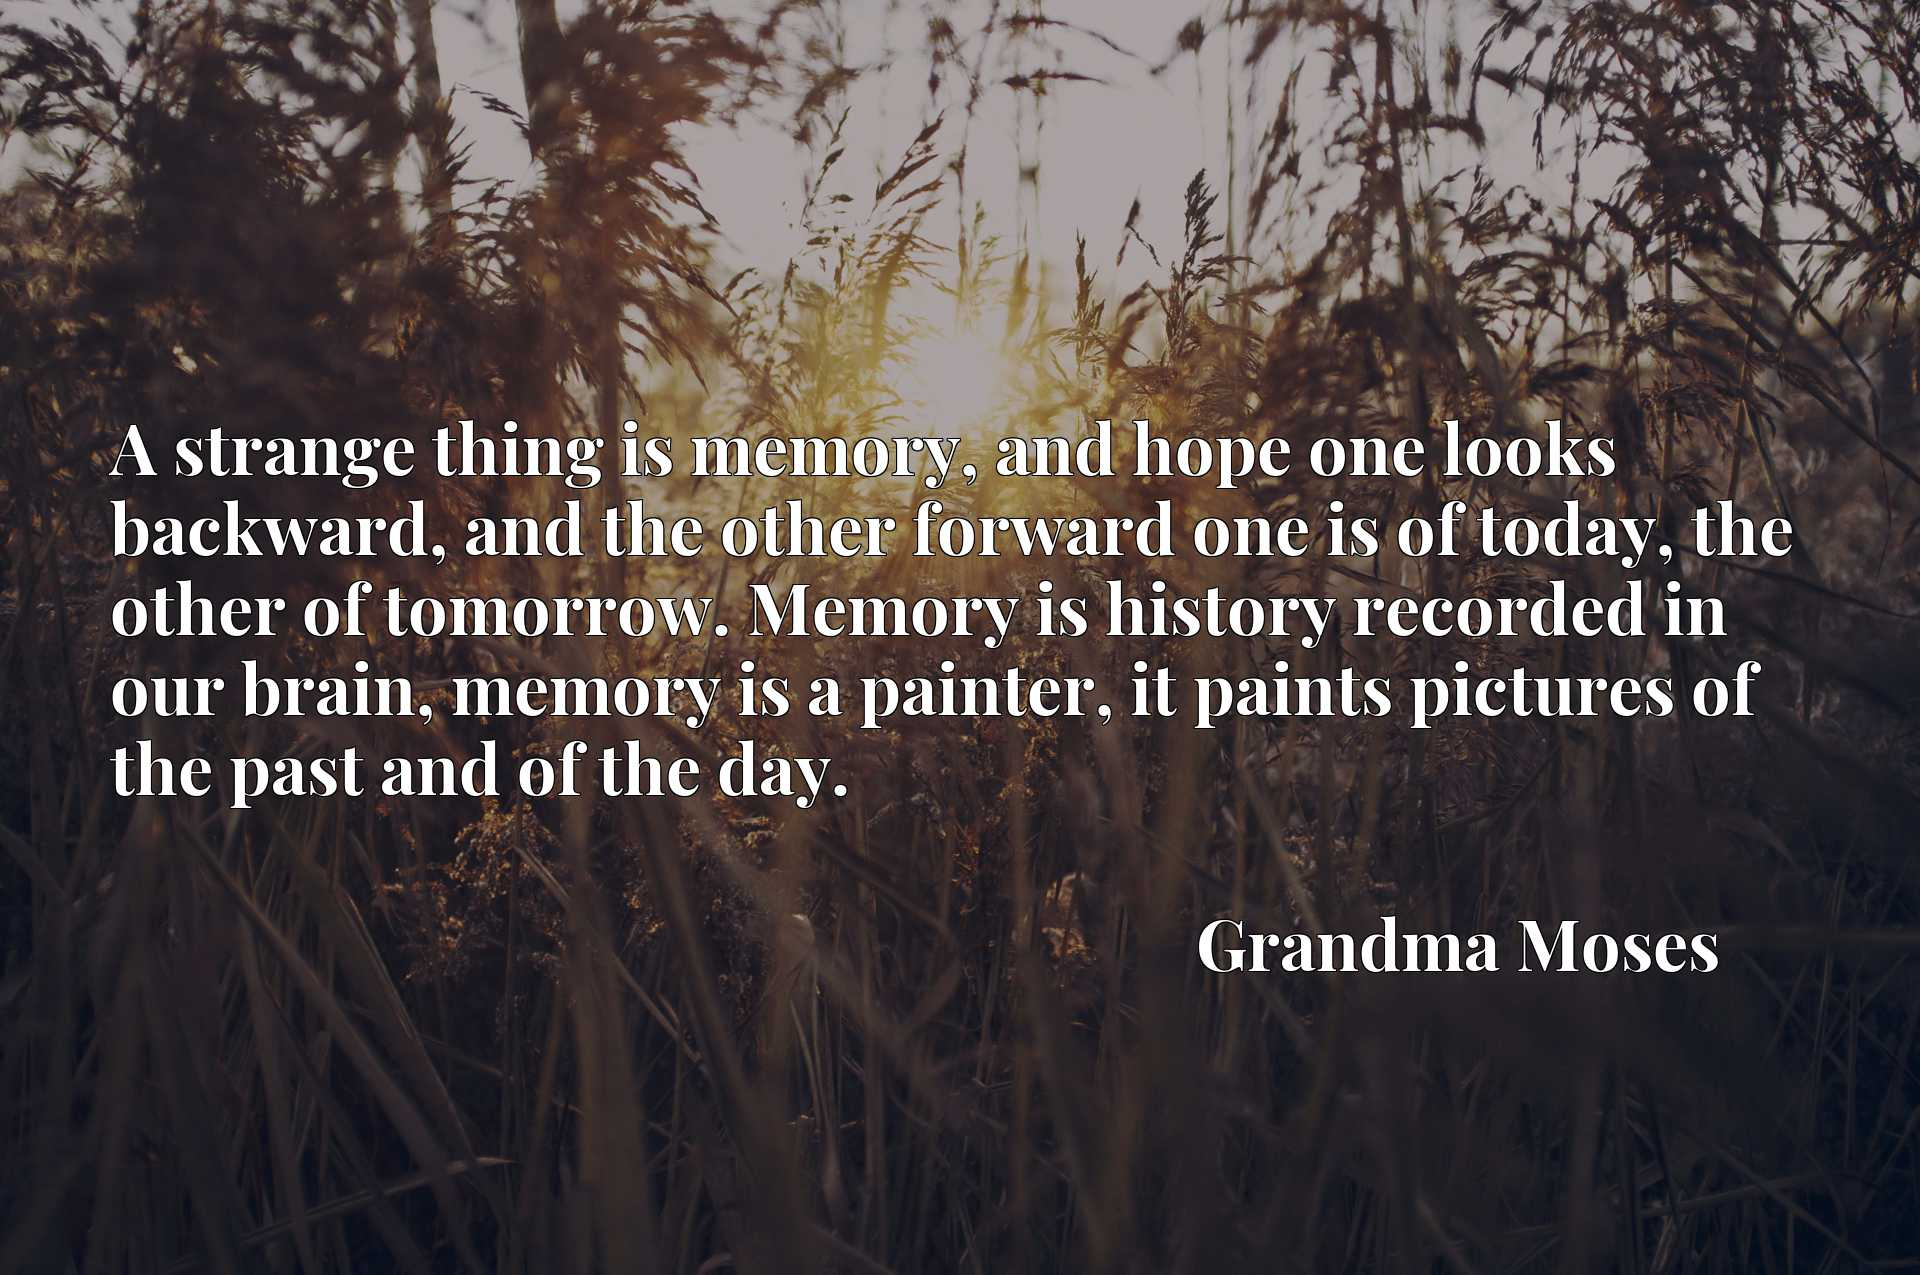 A strange thing is memory, and hope one looks backward, and the other forward one is of today, the other of tomorrow. Memory is history recorded in our brain, memory is a painter, it paints pictures of the past and of the day.